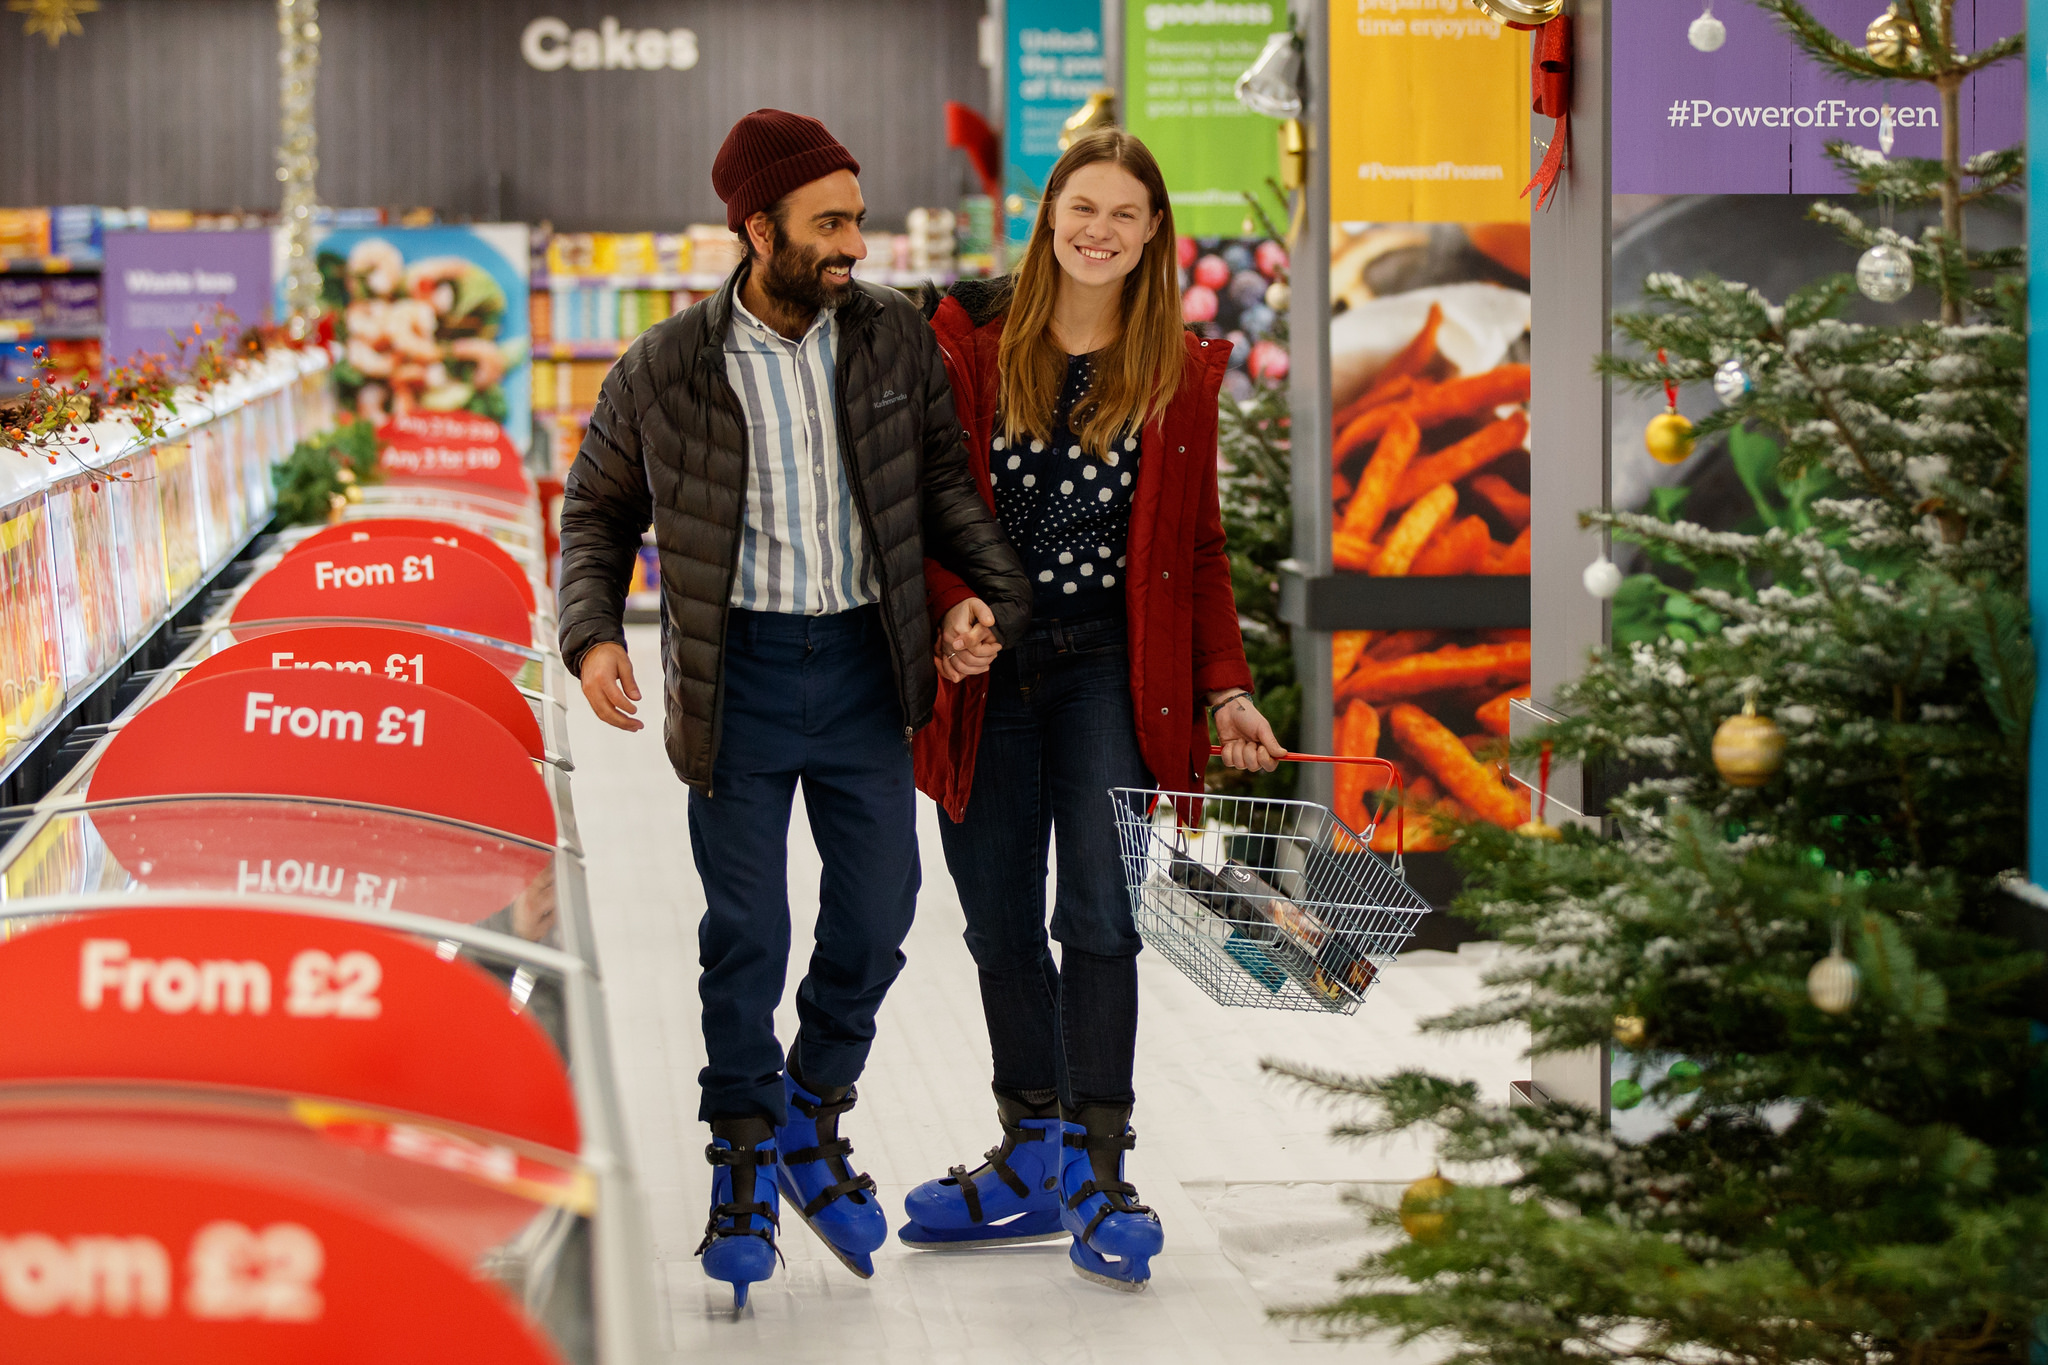 Shoppers negotiating Iceland on skates